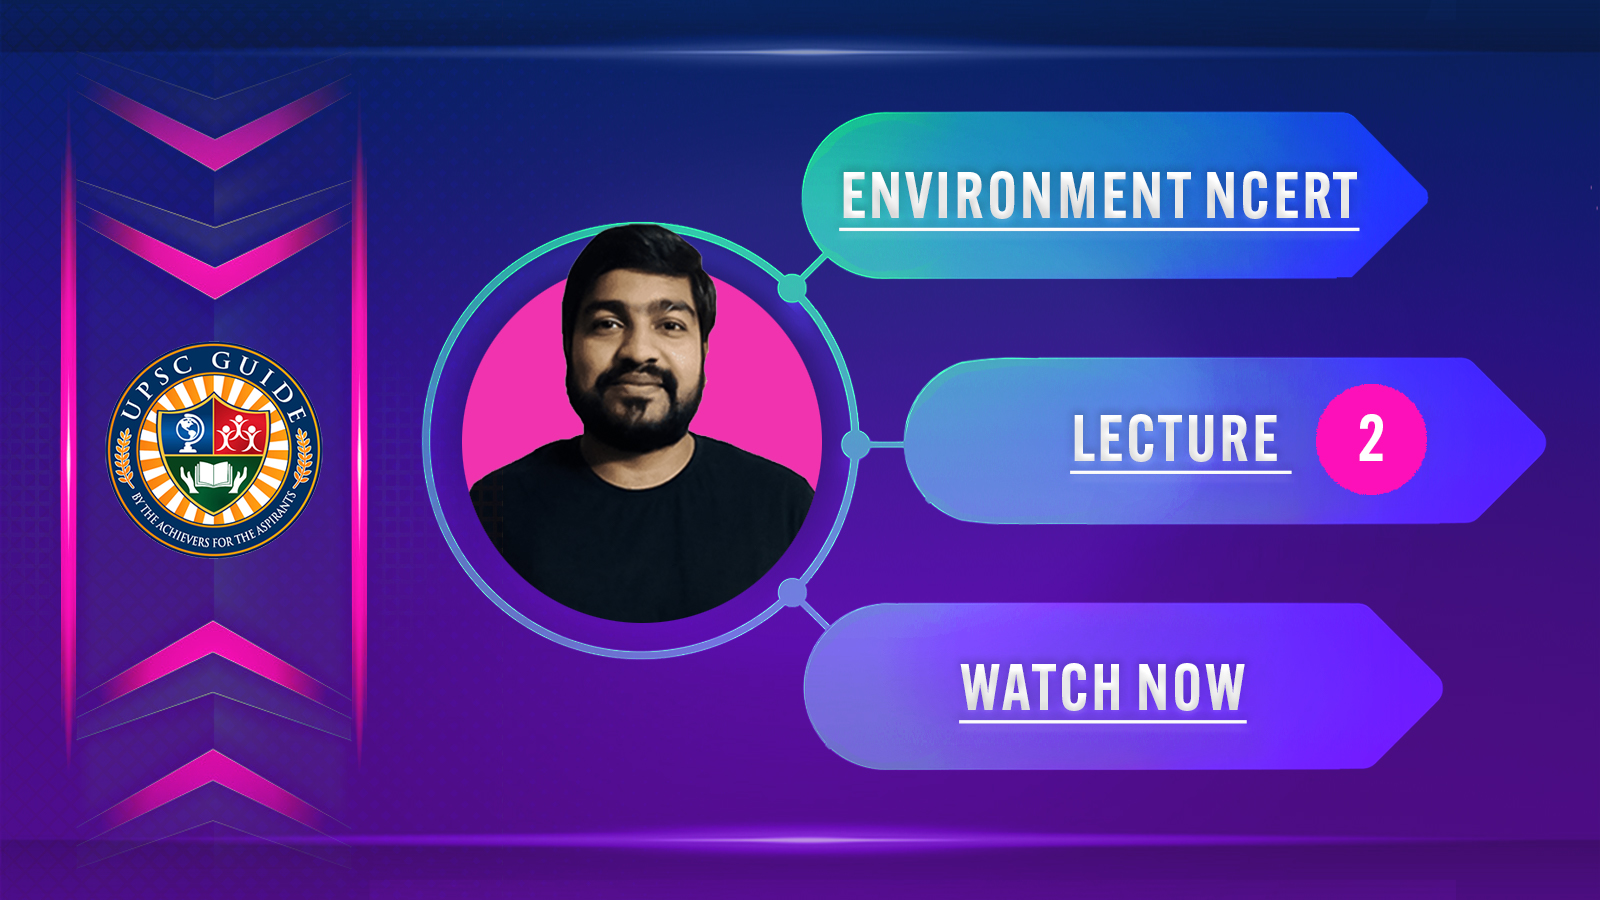 Environment || NCERT || L2 || By Sumit Sir